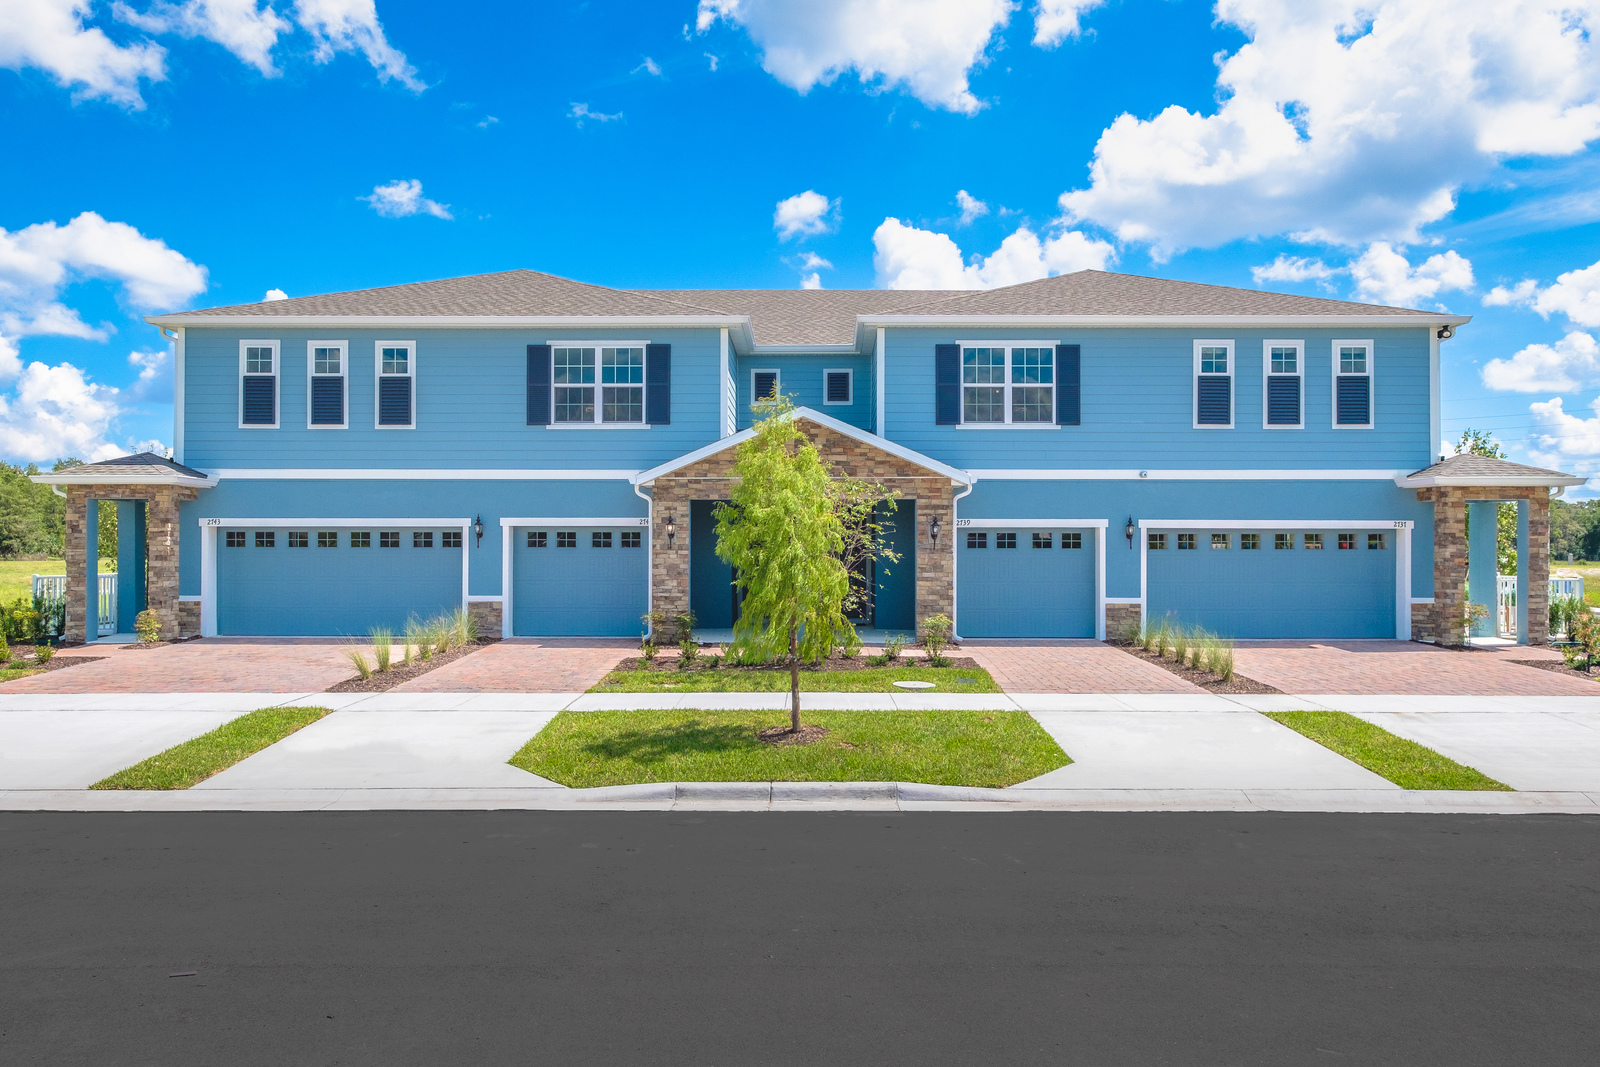 Genial Affordable And Maintenance Free Townhome Living, From The Mid $200s.u0026nbsp;